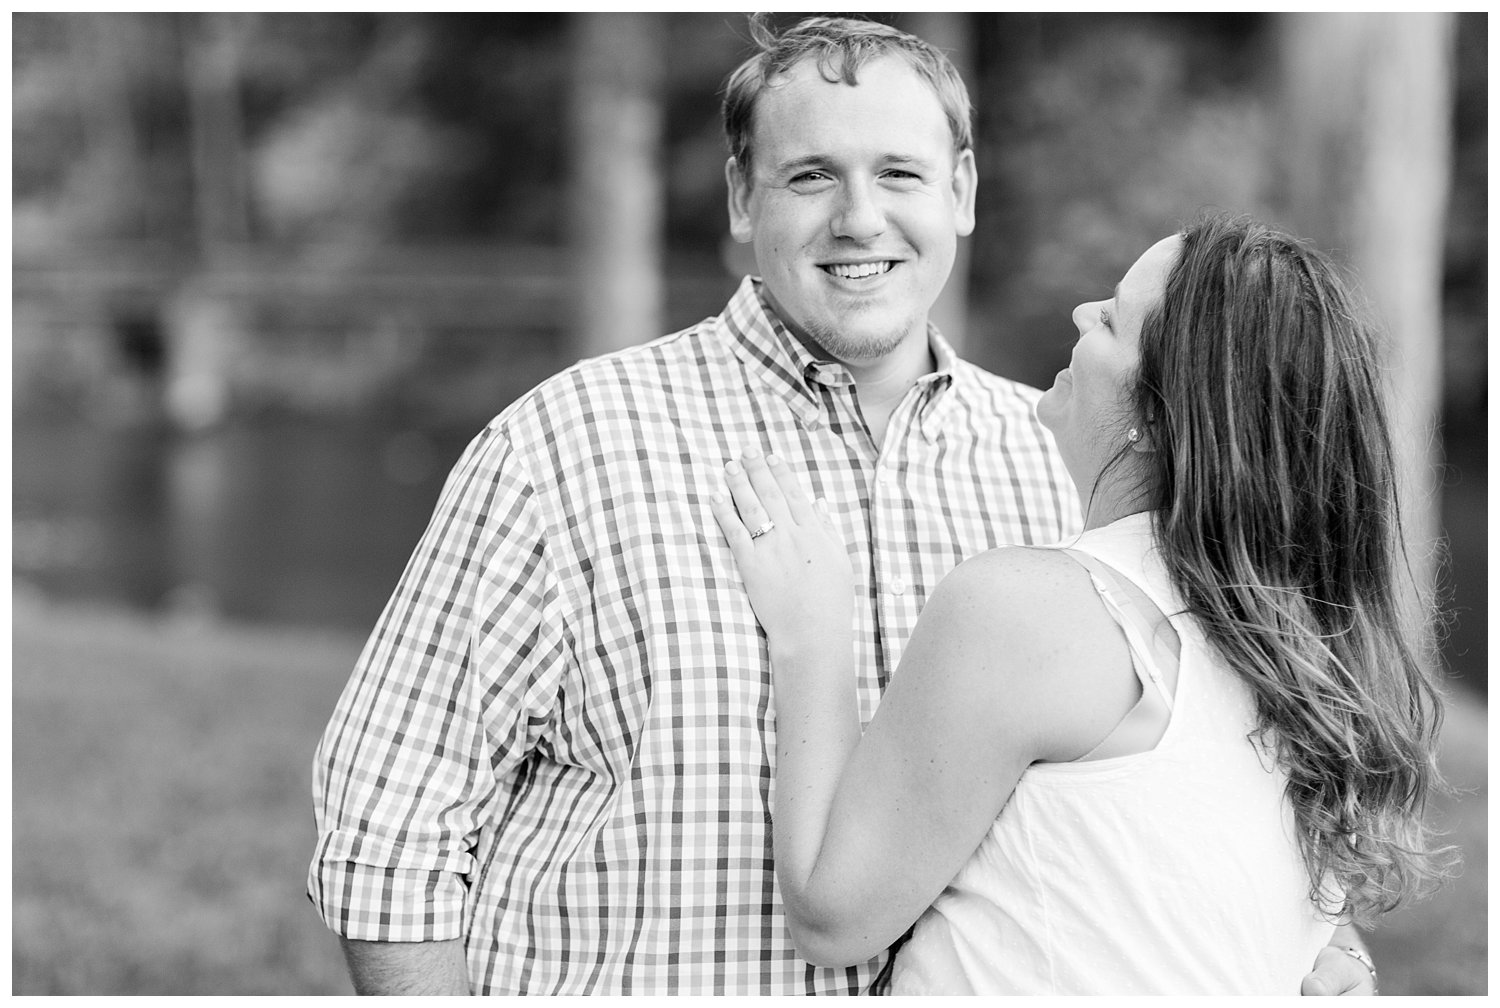 elovephotos old town alexandria engagement session_0798.jpg